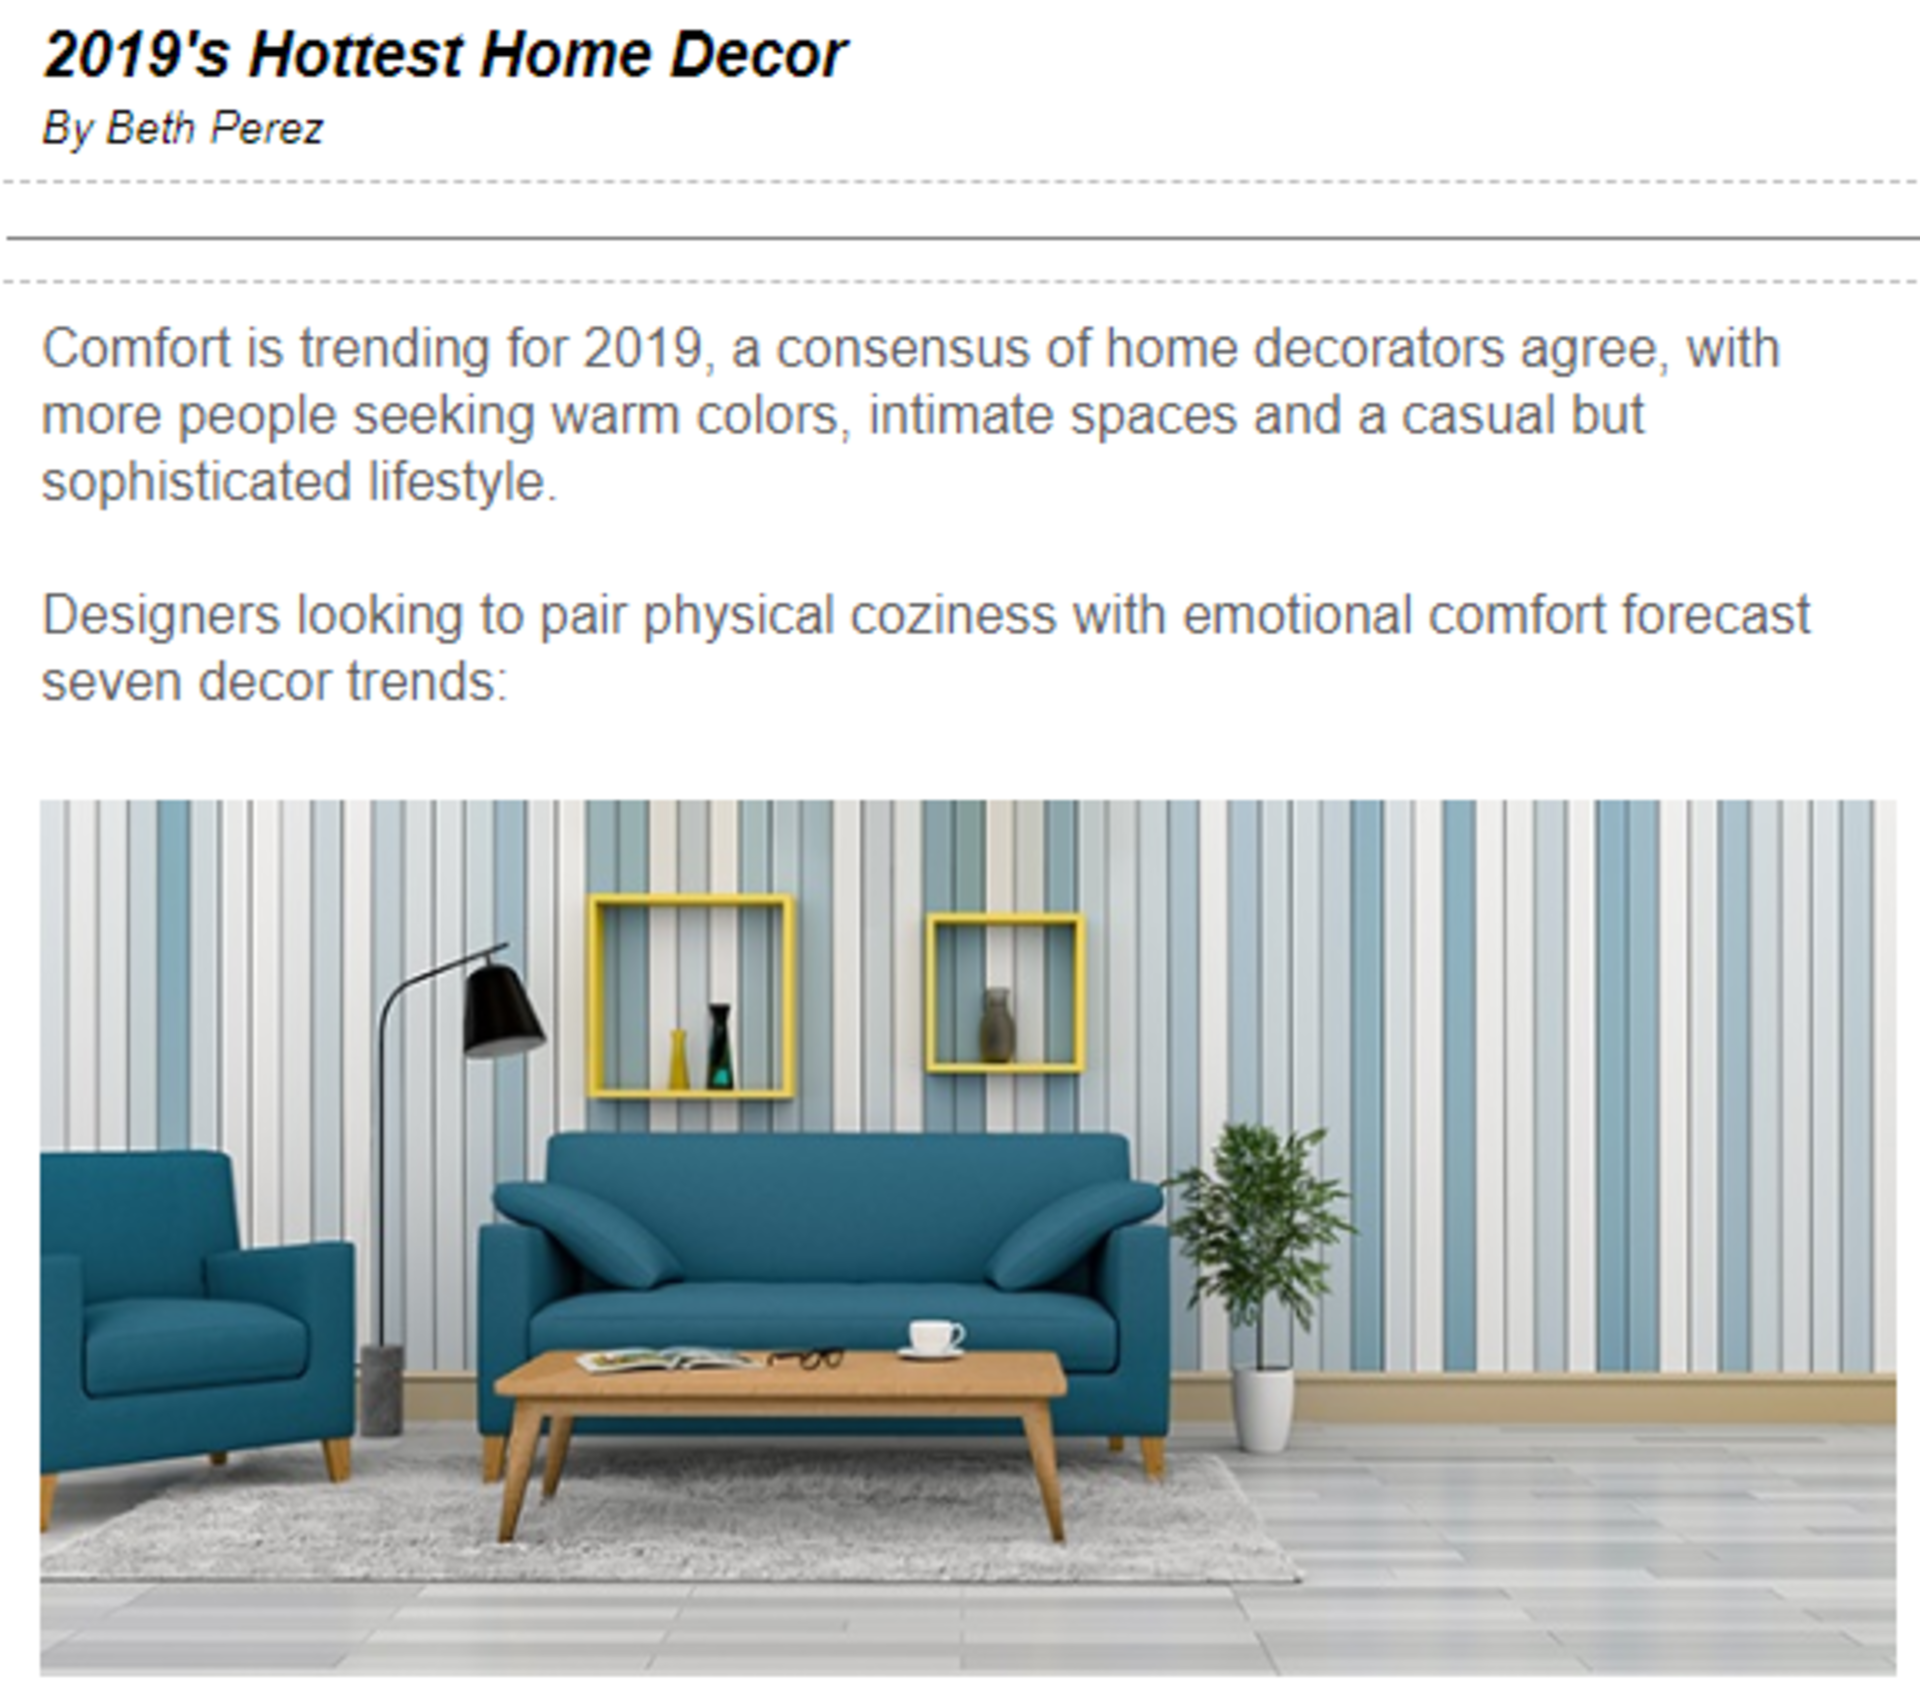 2019's Hottest Home Decor